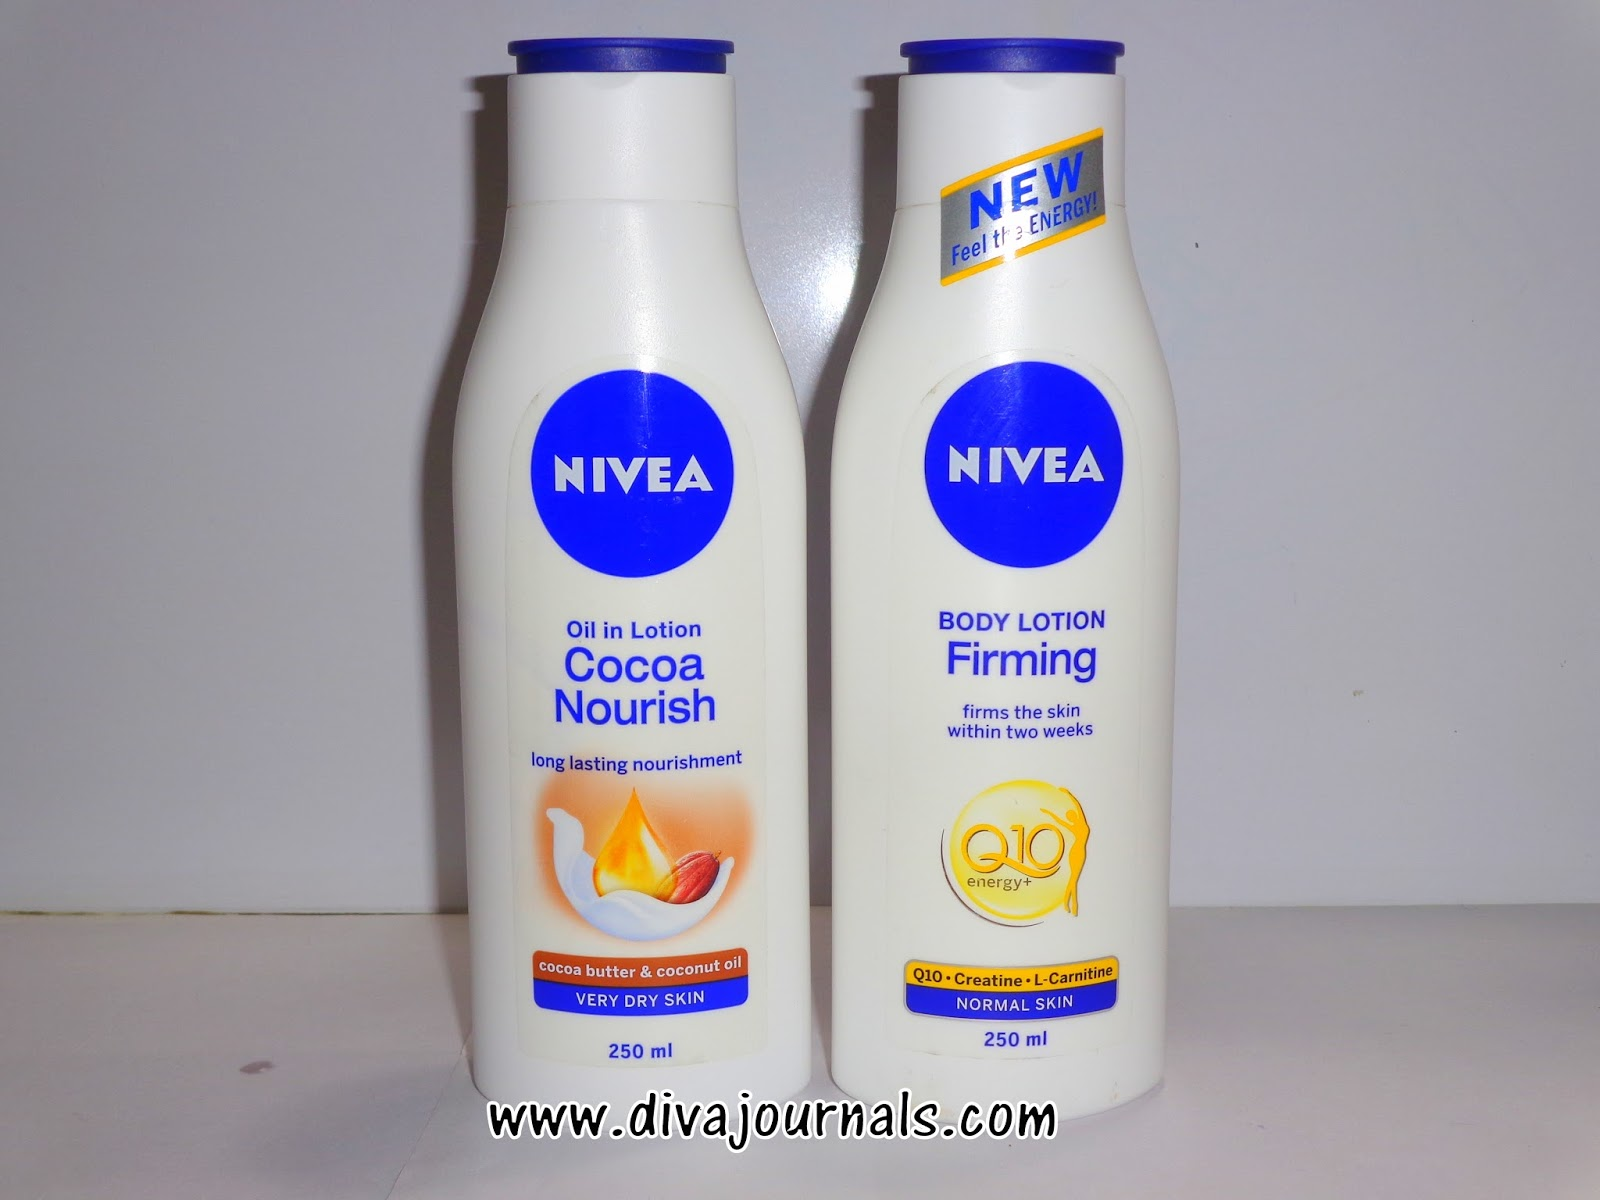 Nivea Q10 Firming & Nivea Oil in Lotion Cocoa Nourish Body Lotions Reviews